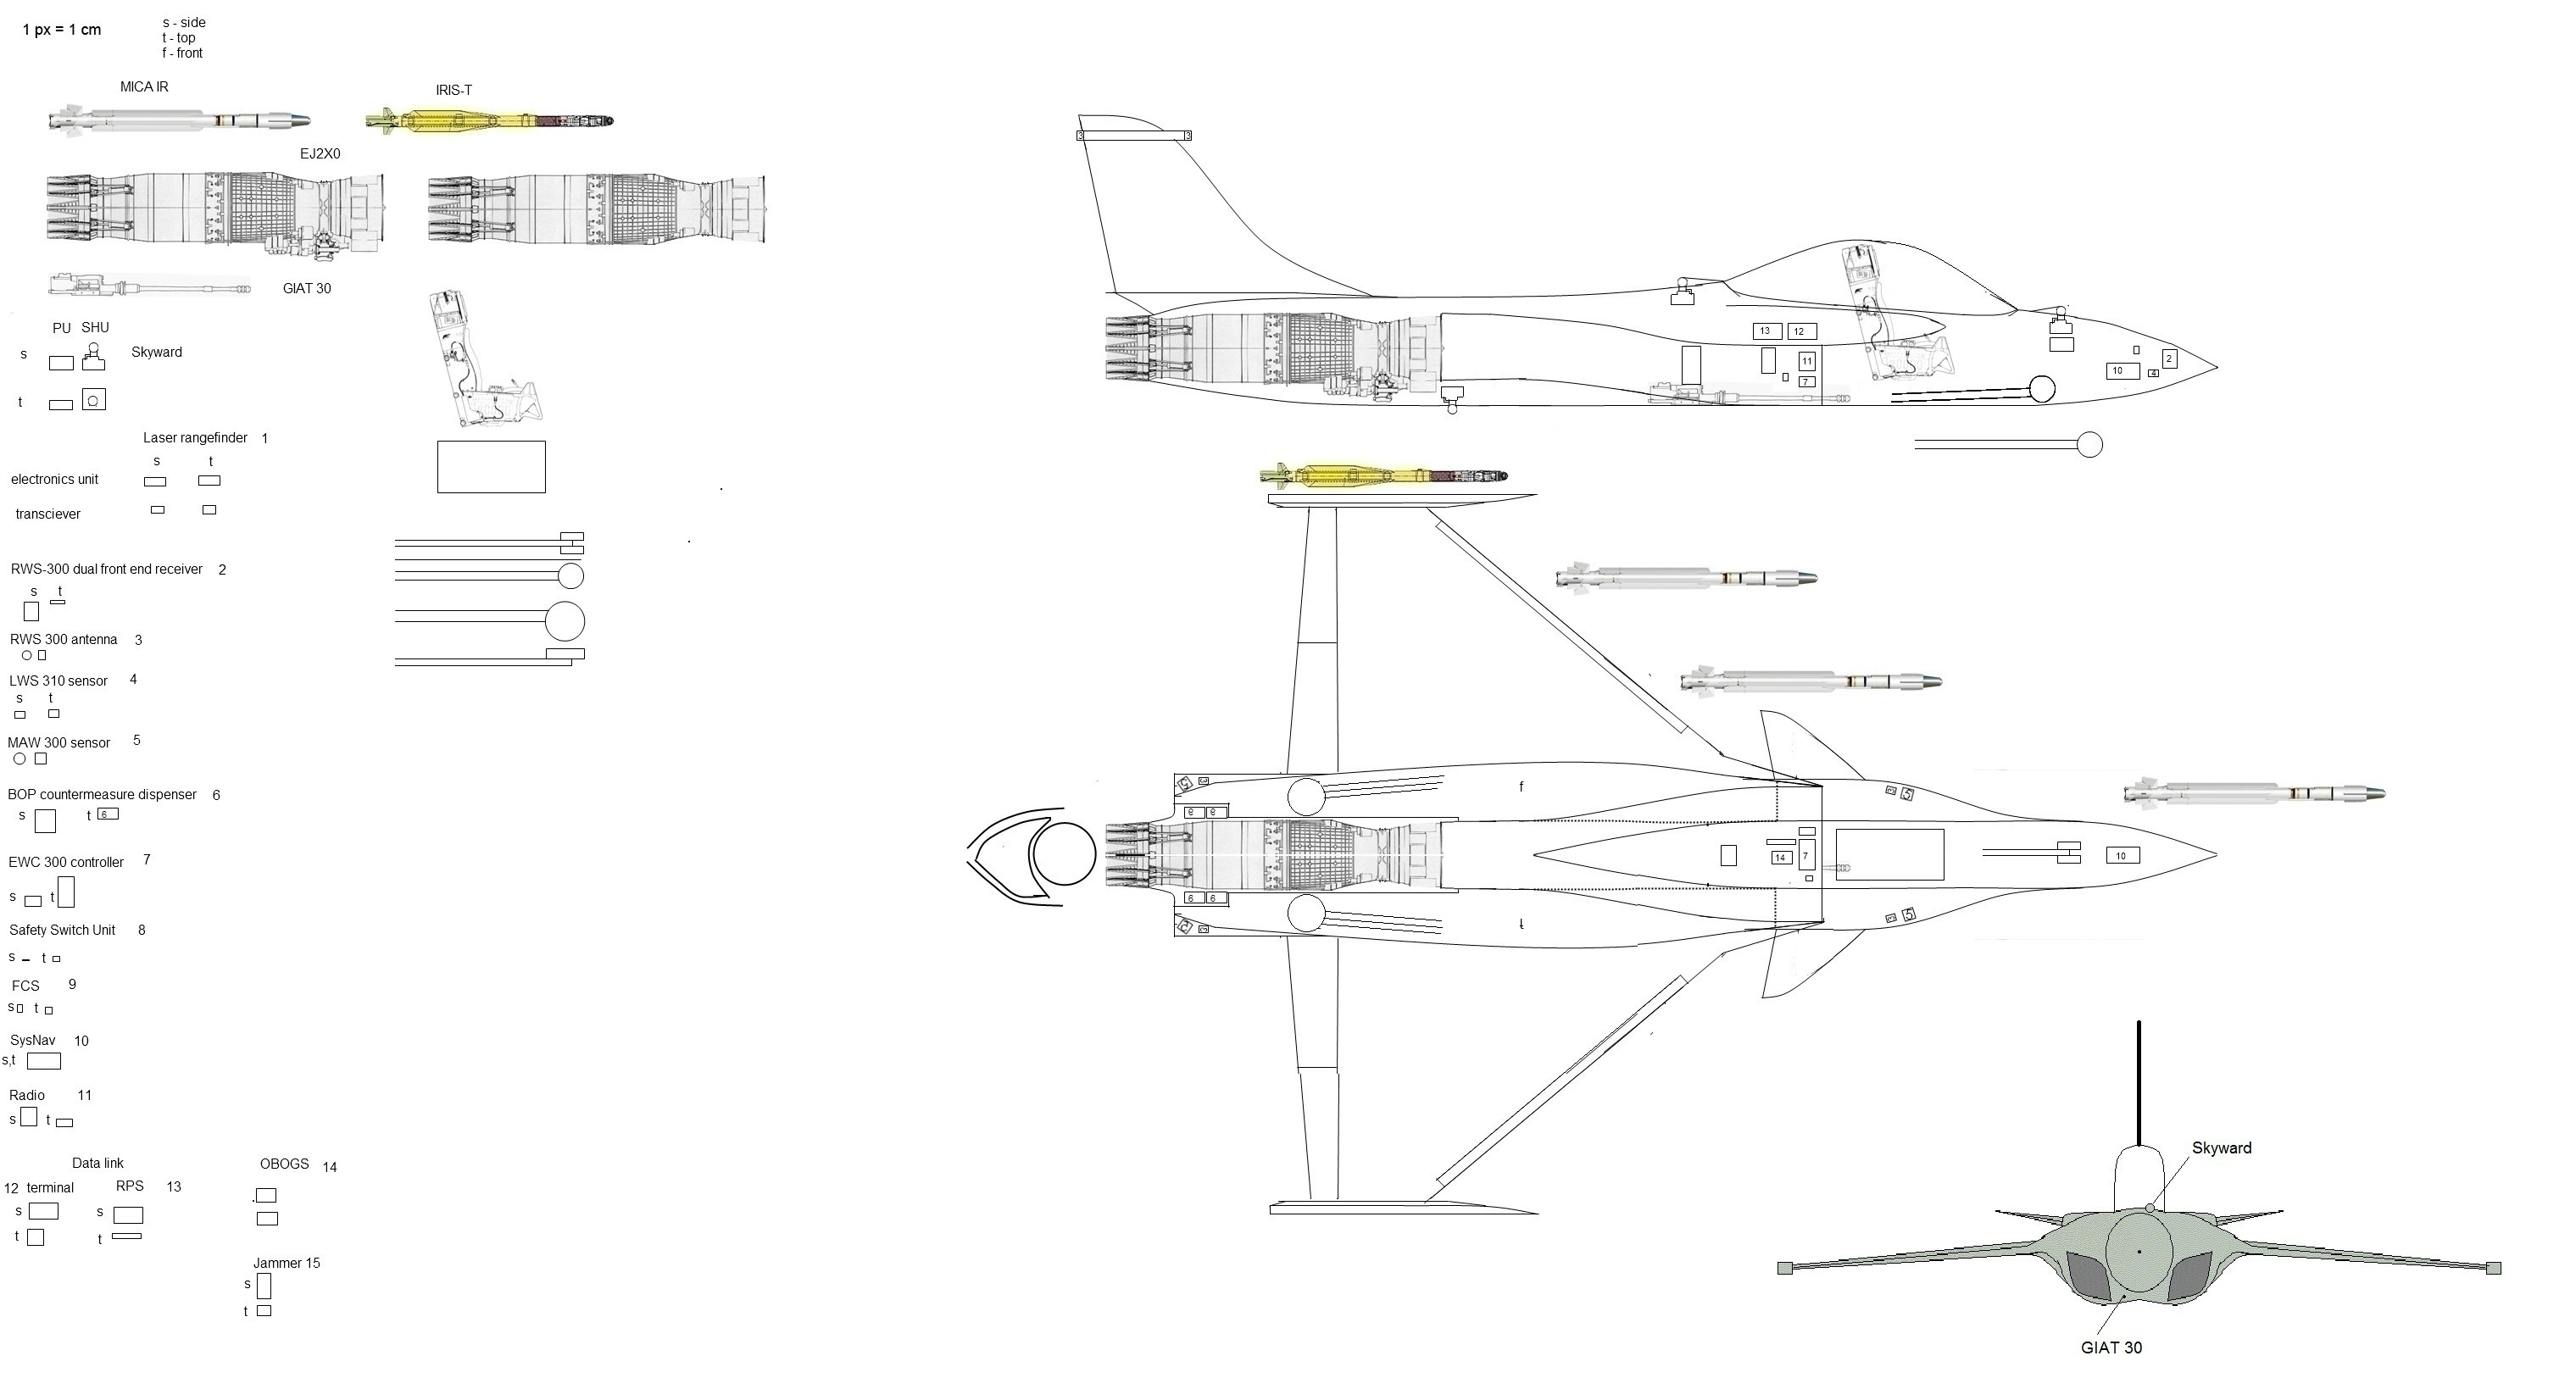 Air Superiority Fighter Proposal 6 Defense Issues Http Mk1 Performance Conversions Co Uk Wiring Diagram Moke To 1967 Flxinternal